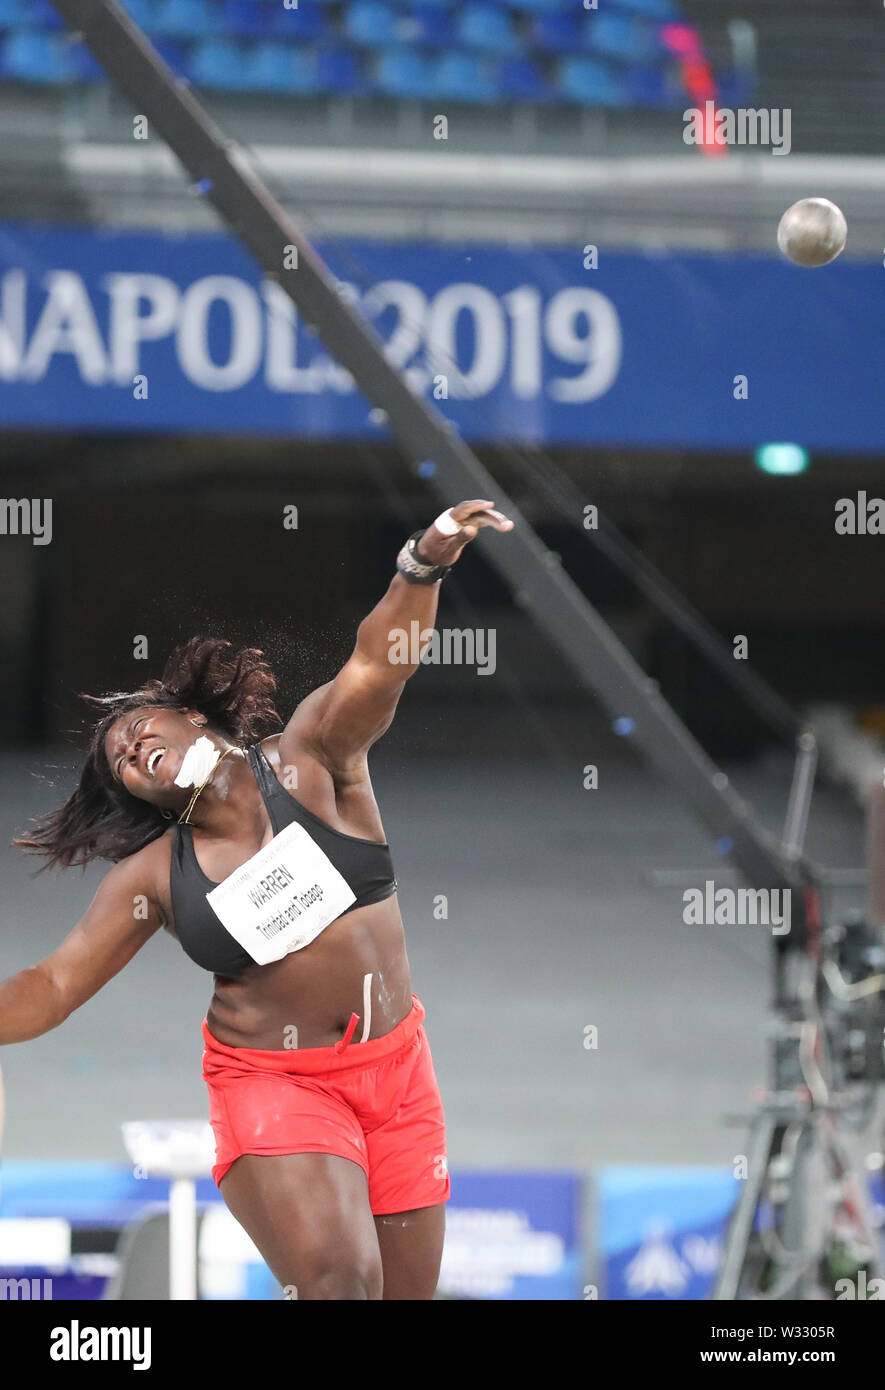 Naples, Italy. 11th July, 2019. Portious Warren of Trinidad and Tobago competes during the final of Women's Shot Put of Athletics at the 30th Summer Universiade in Naples, Italy, July 11, 2019. Warren won the silver medal with 17.82 meters. Credit: Cheng Tingting/Xinhua/Alamy Live News - Stock Image